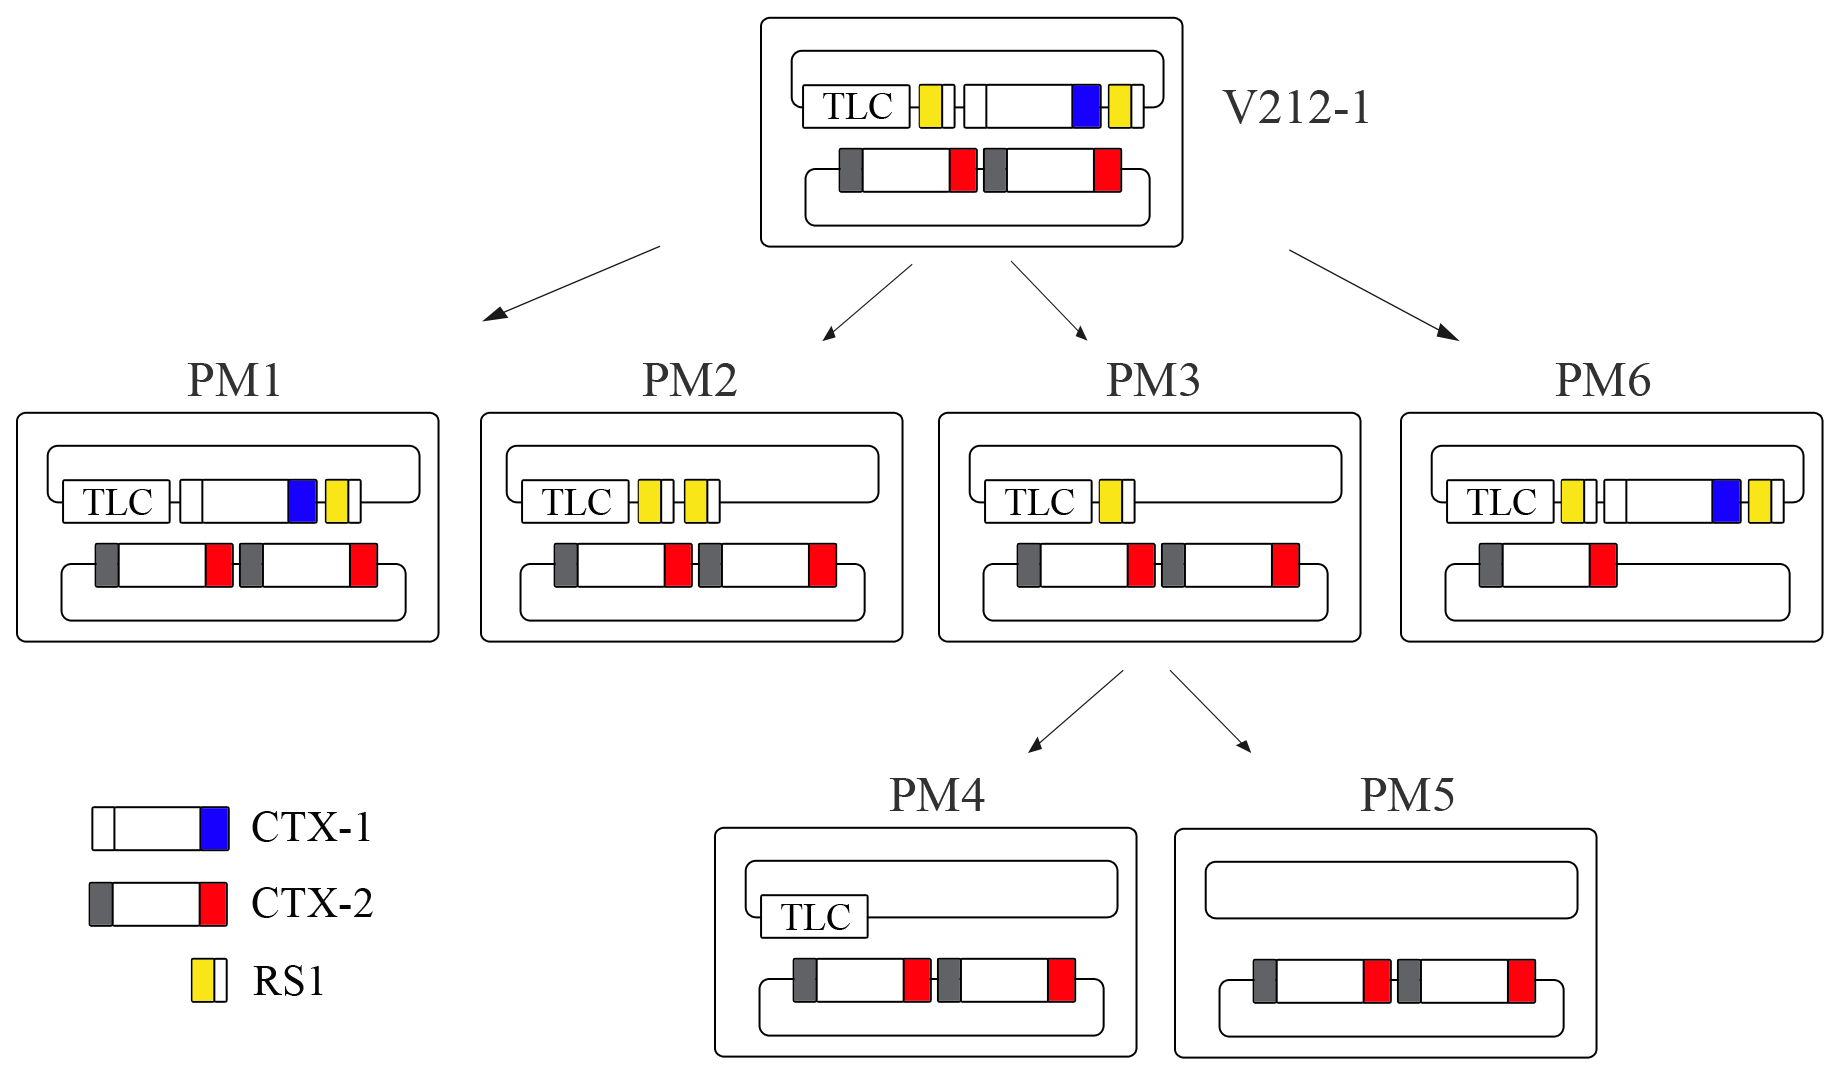 Generation of Wave 2 strains by excision of CTX-1 and RS1 from V212-1.